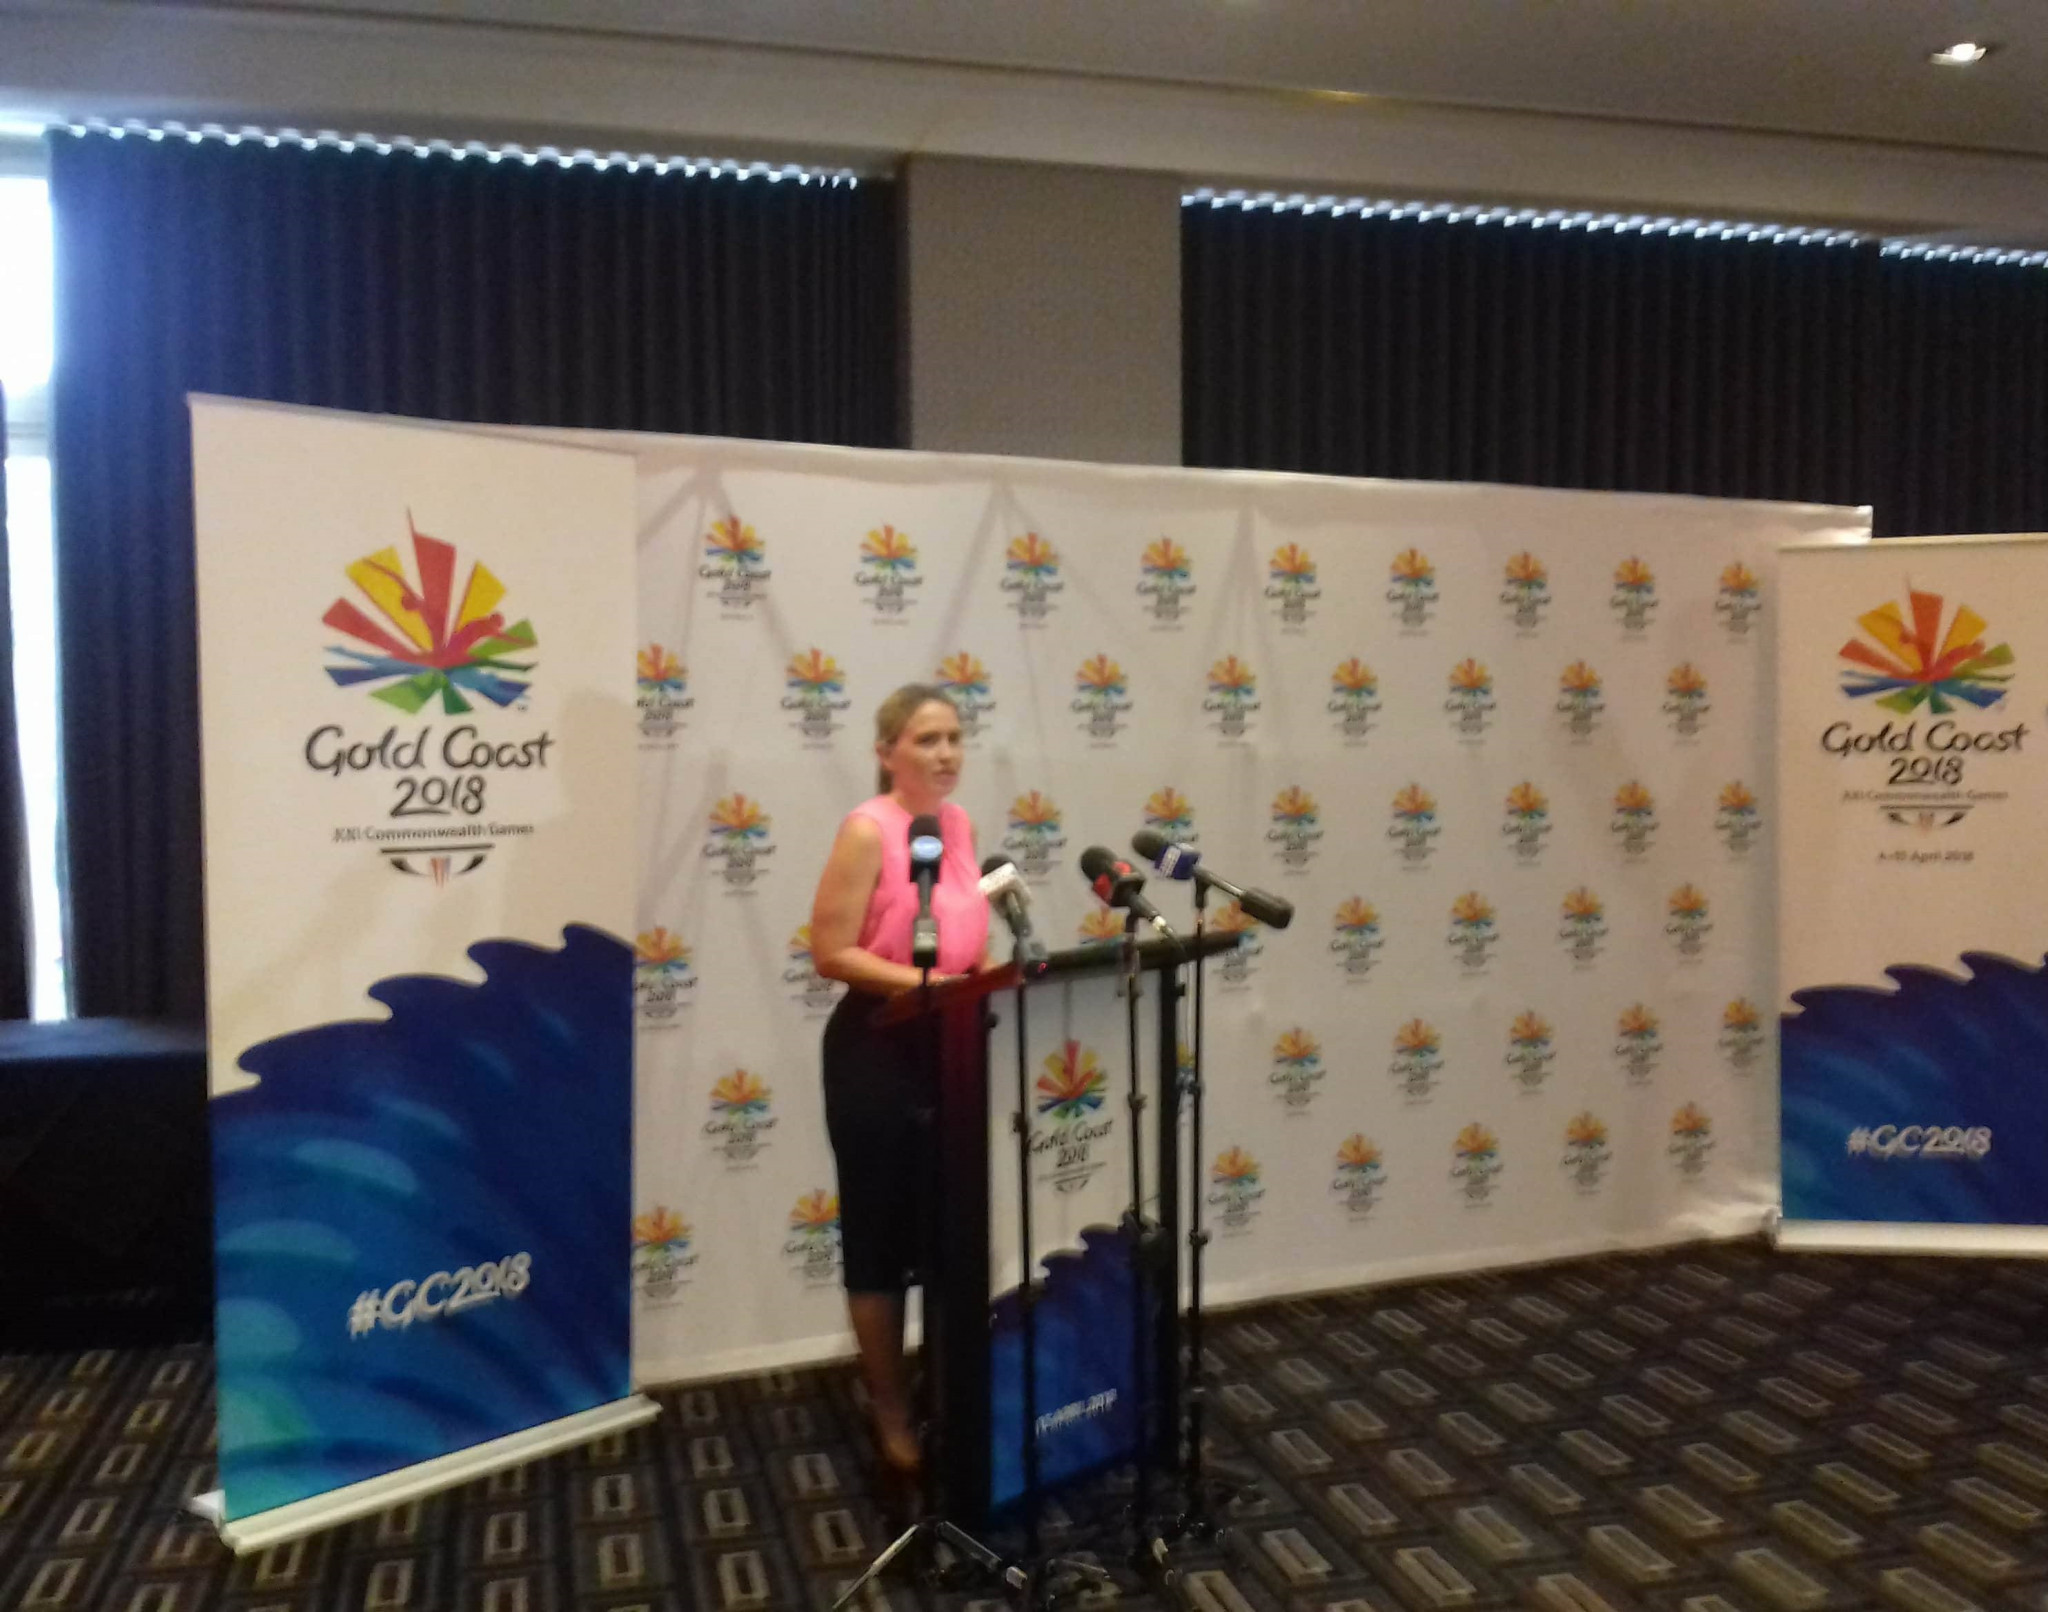 Seminar will highlight Gold Coast's readiness for Commonwealth Games, Minister claims